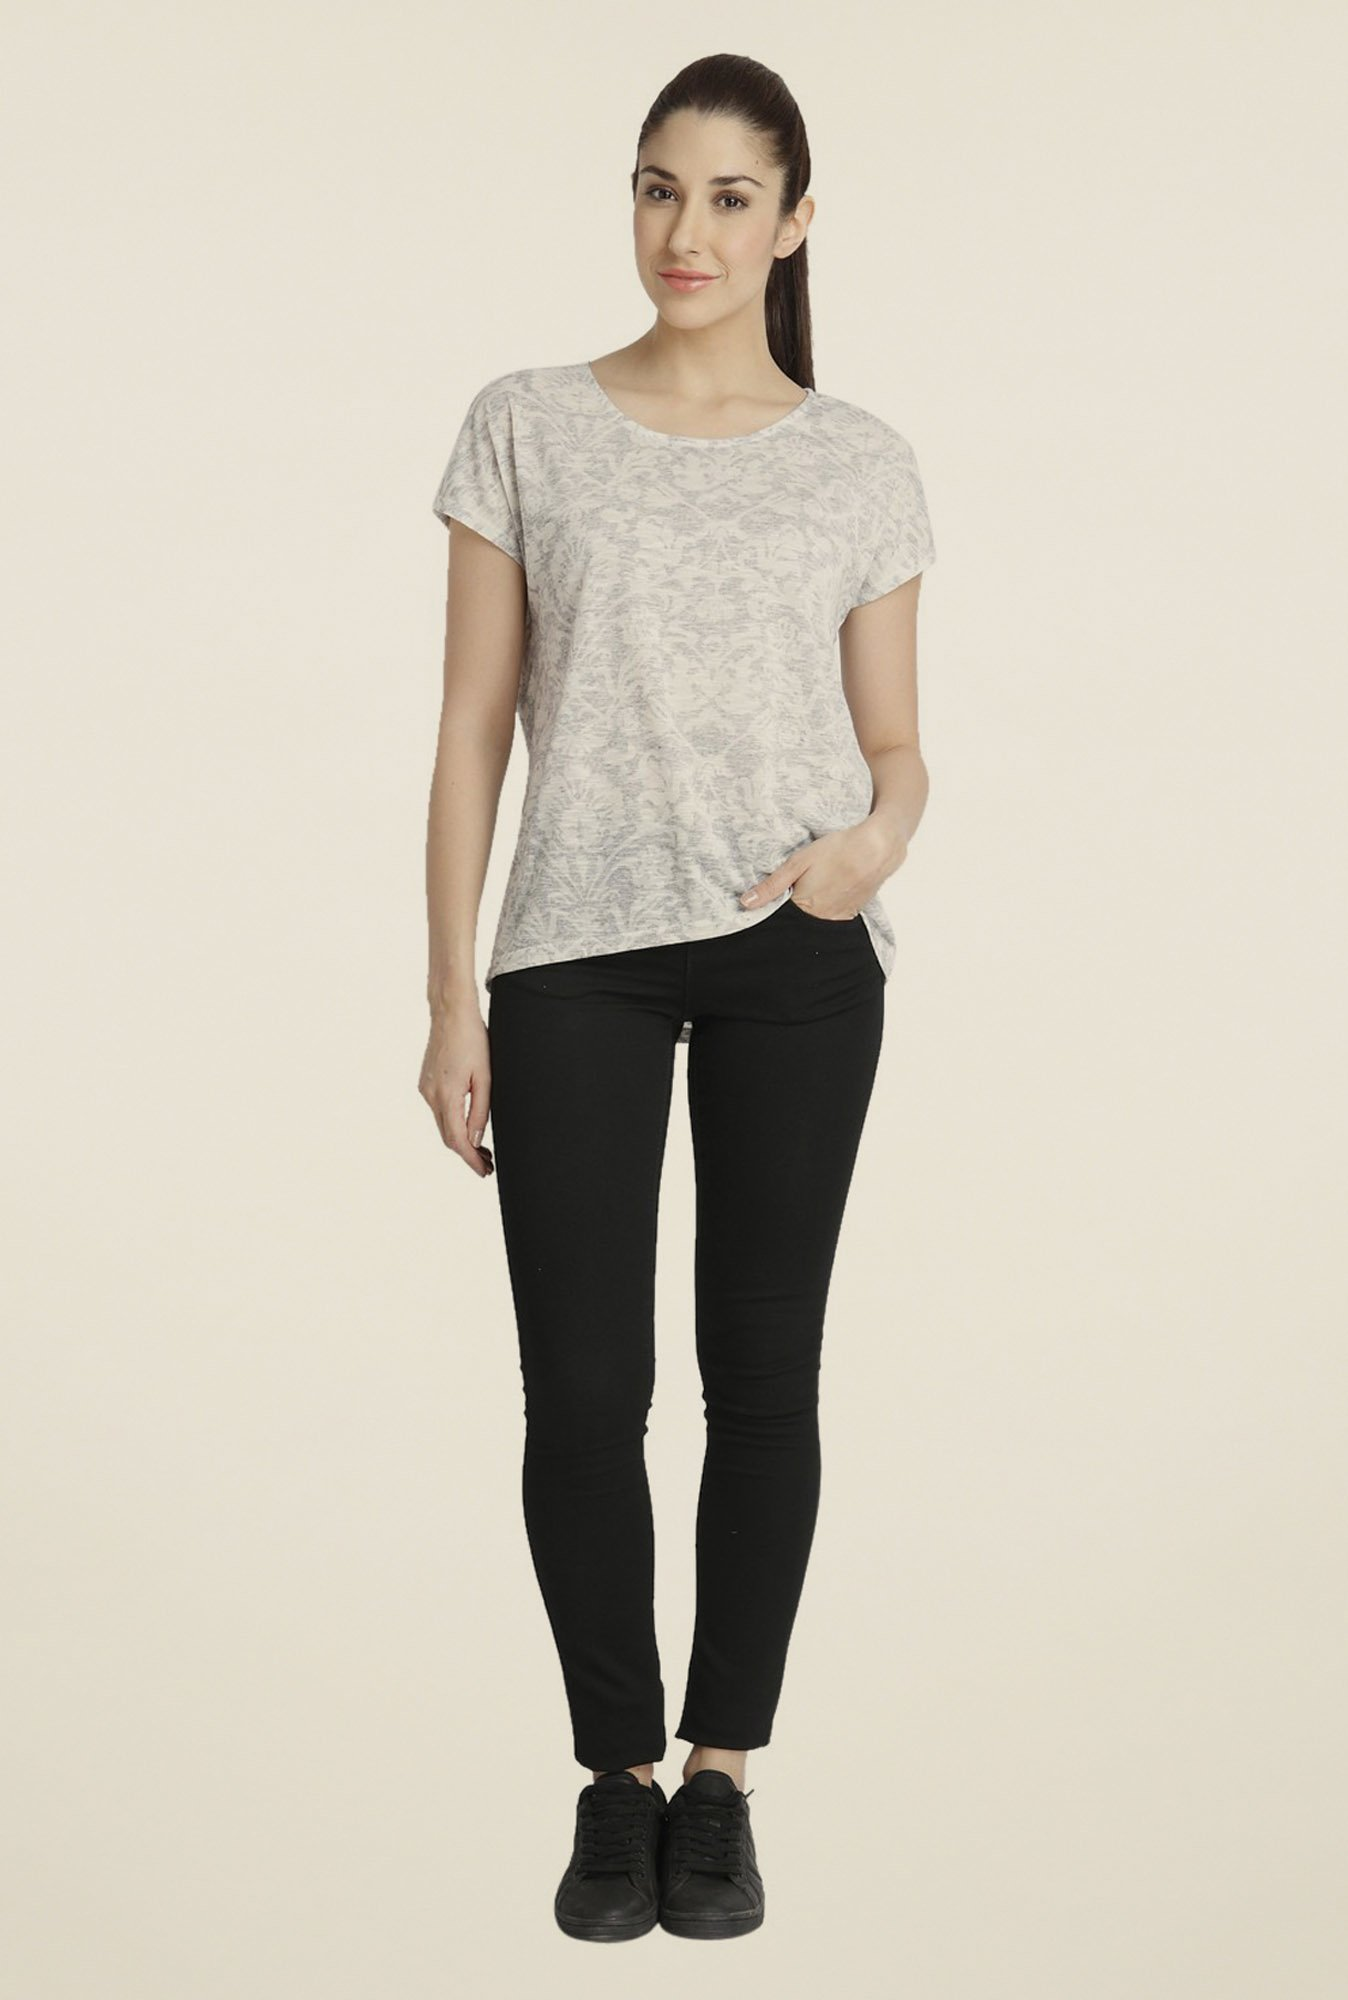 Vero Moda Off-white Printed T-shirt